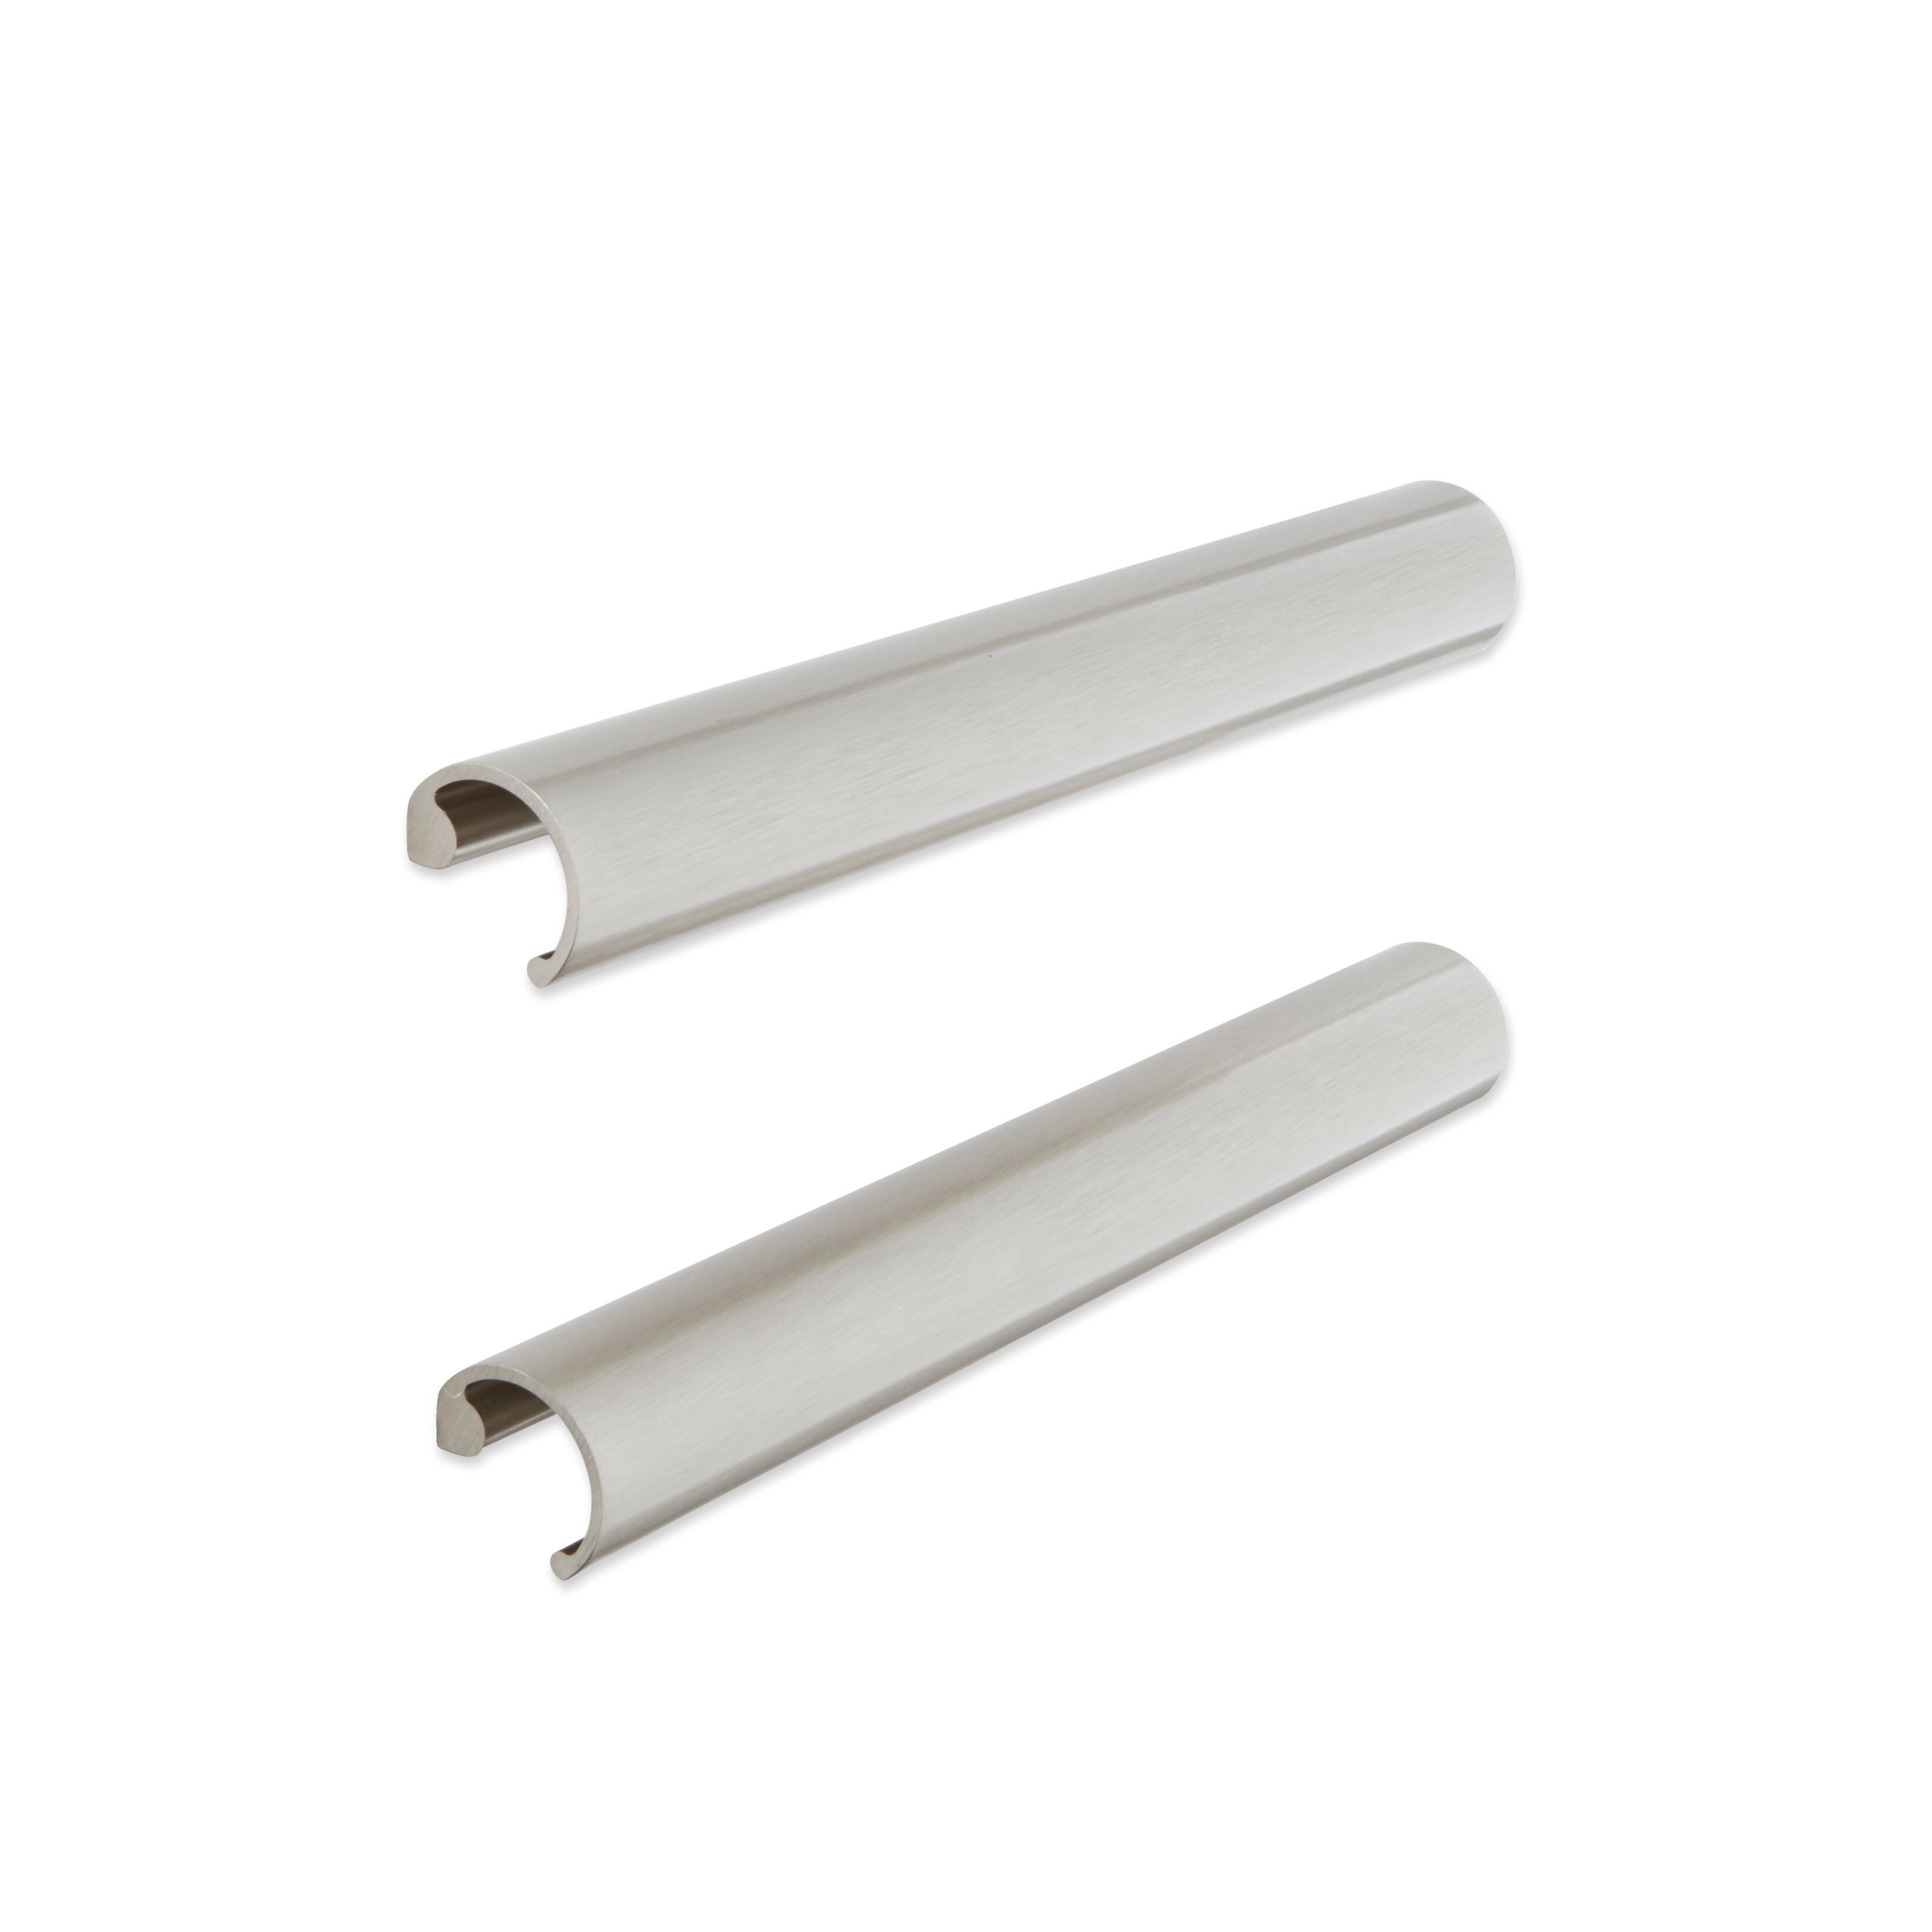 Cooke & Lewis Brushed Nickel Effect Curved Cabinet Handle, Pack Of 2